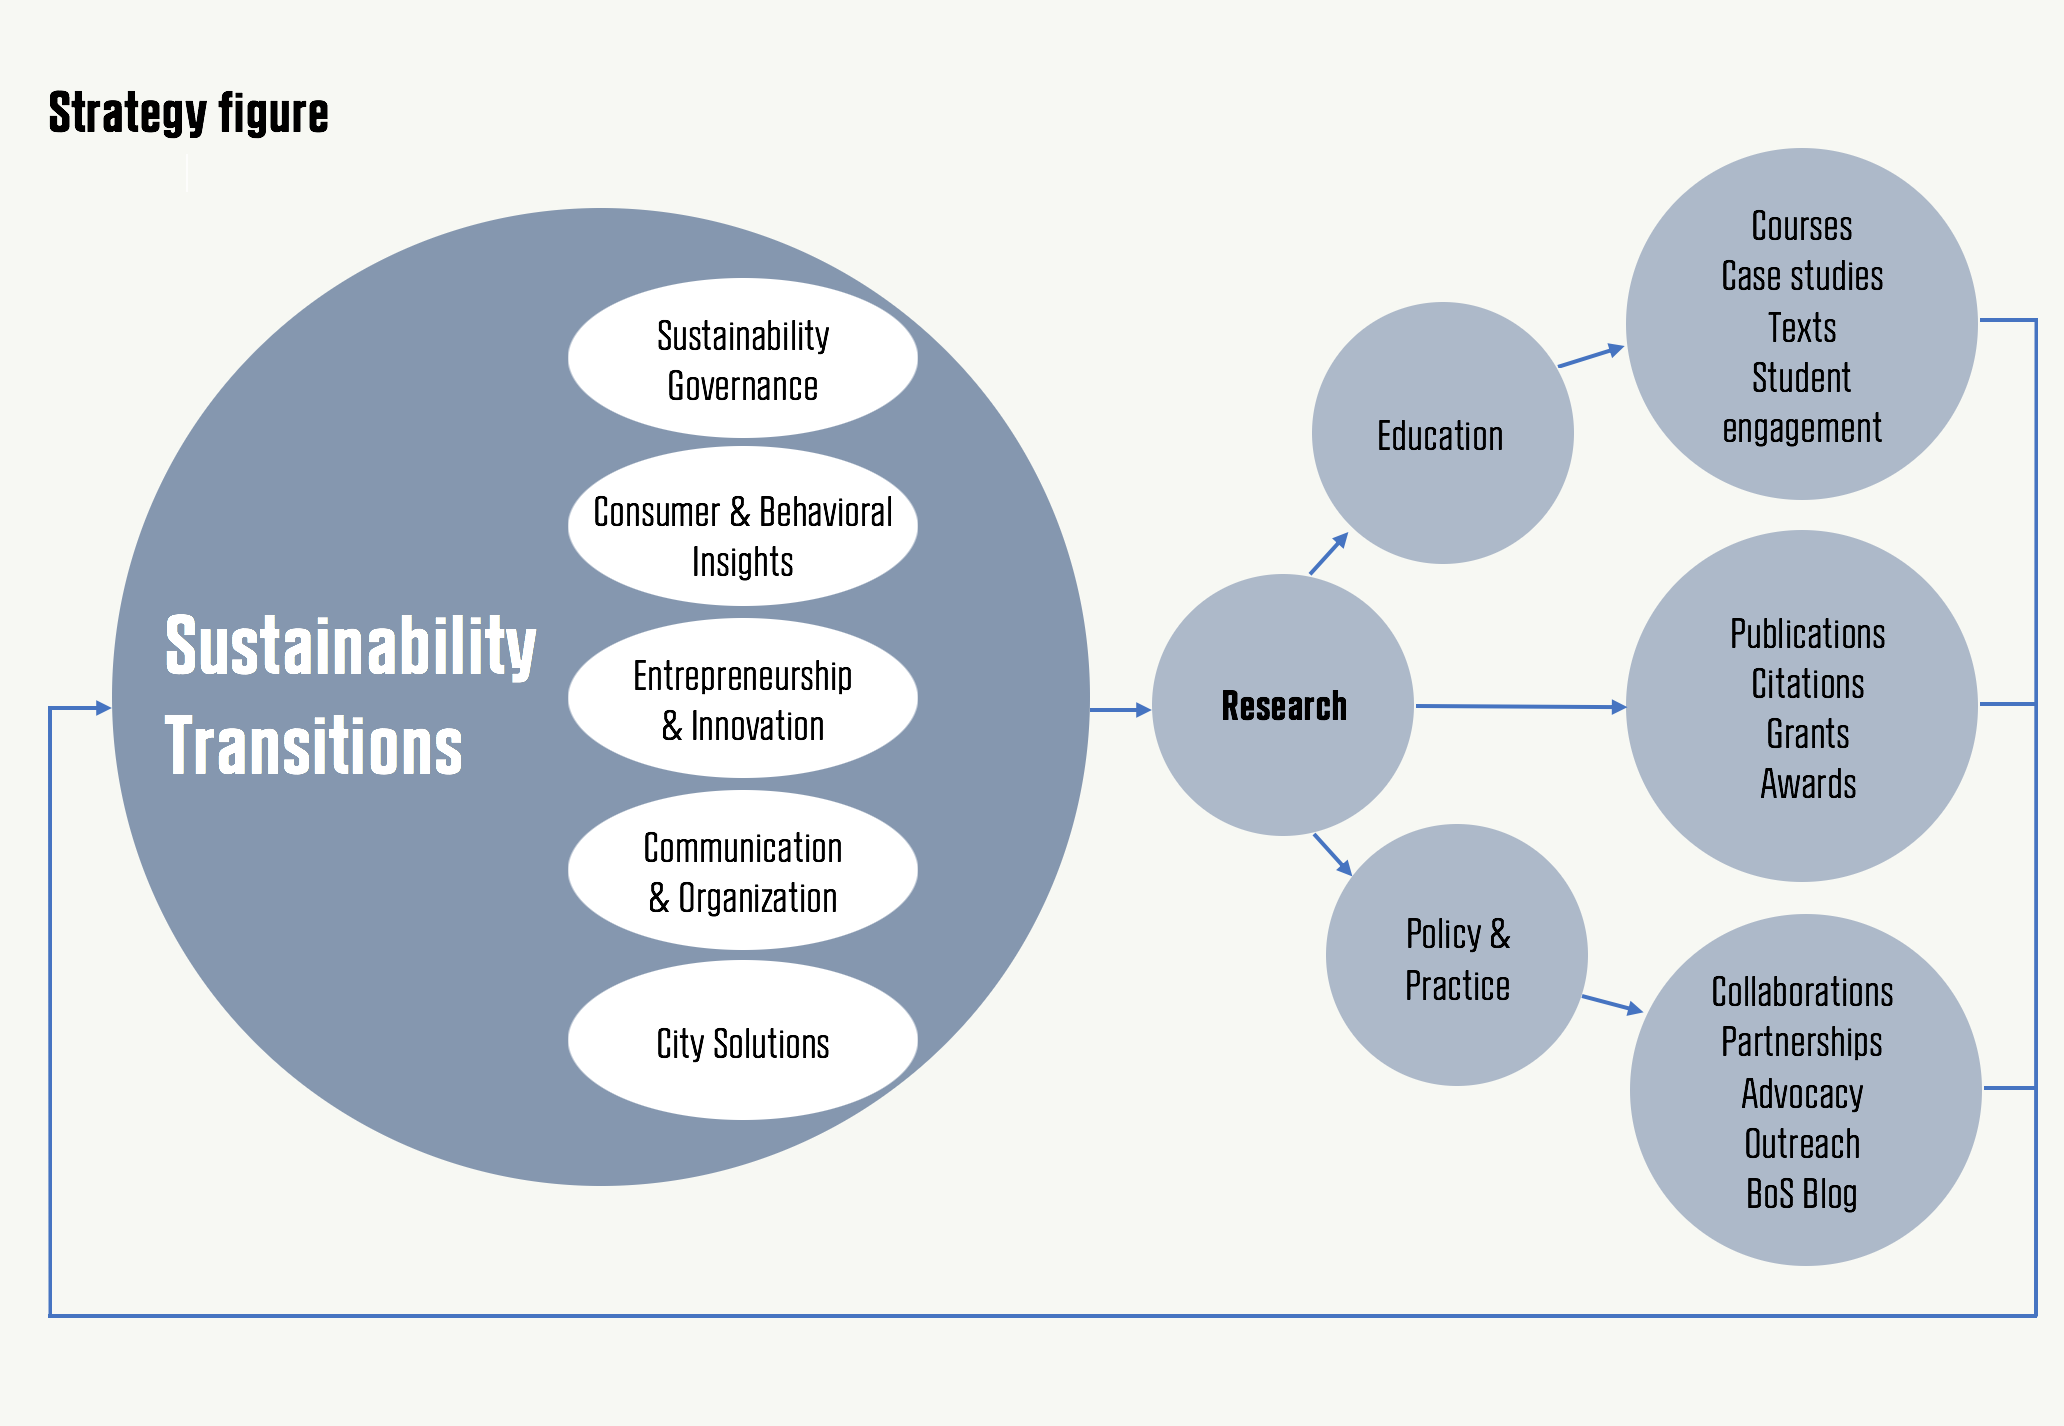 CBS Sustainability Strategy Figure